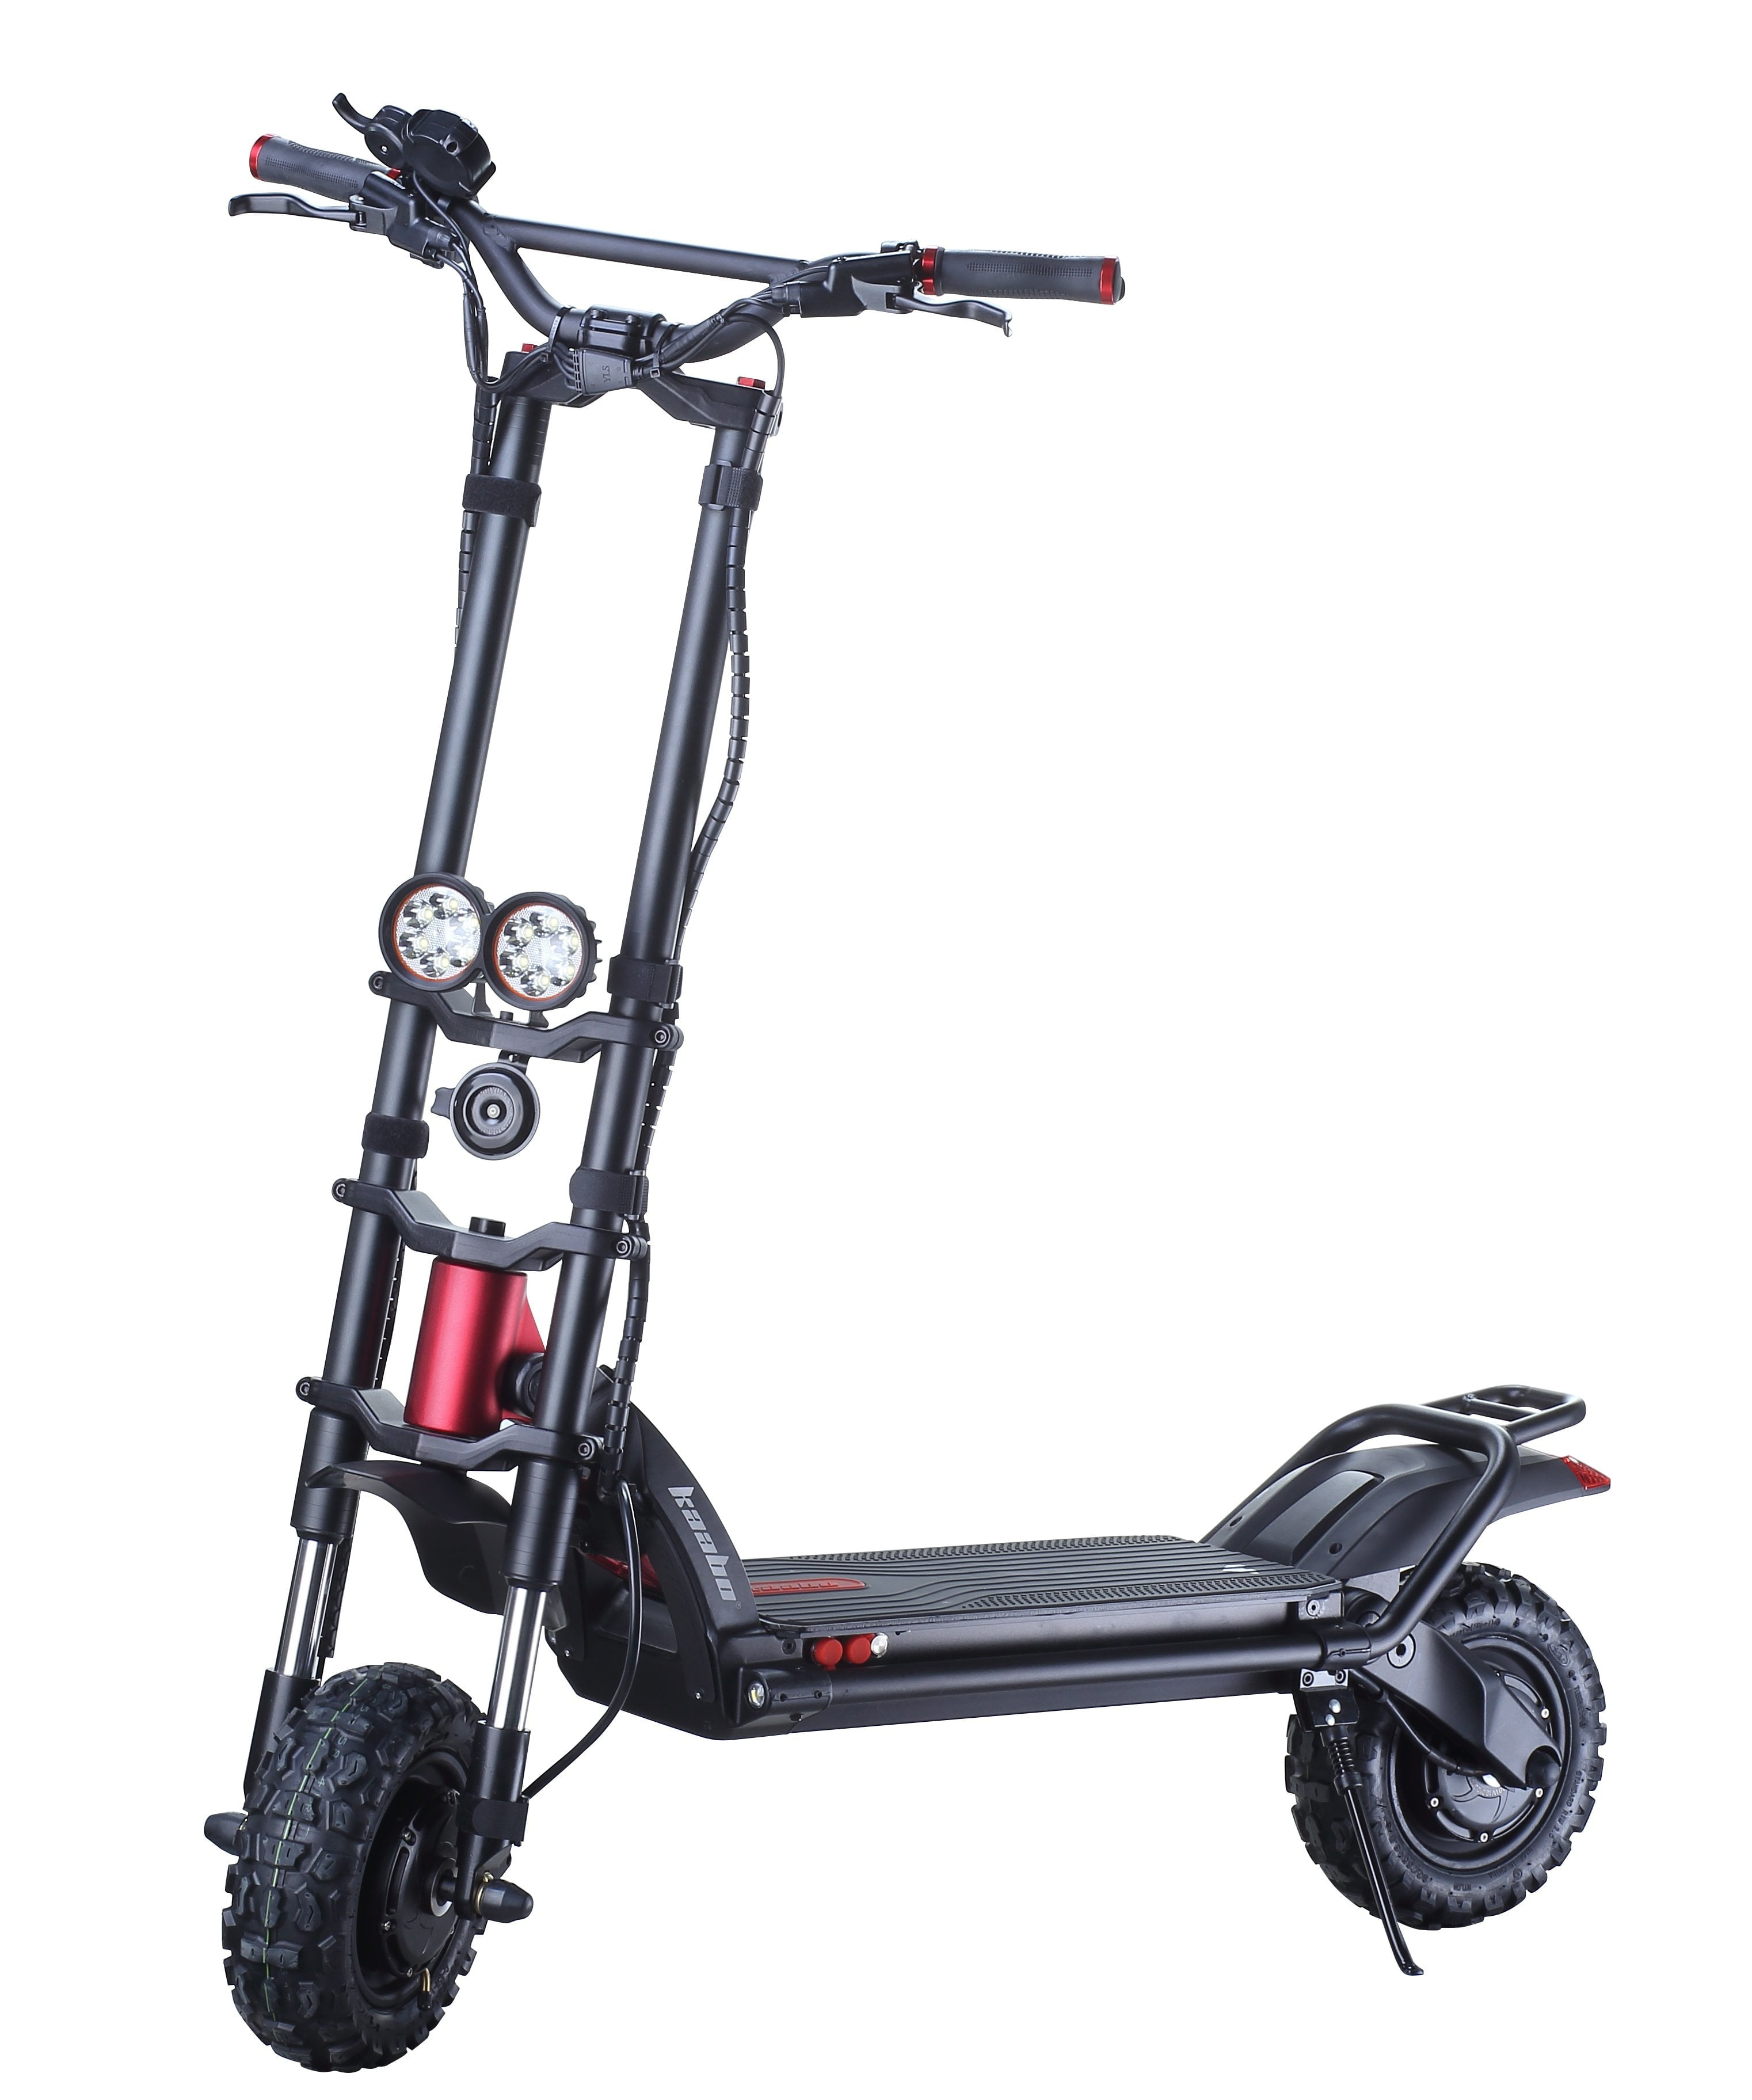 Kaabo Wolf Warrior off road electric scooter